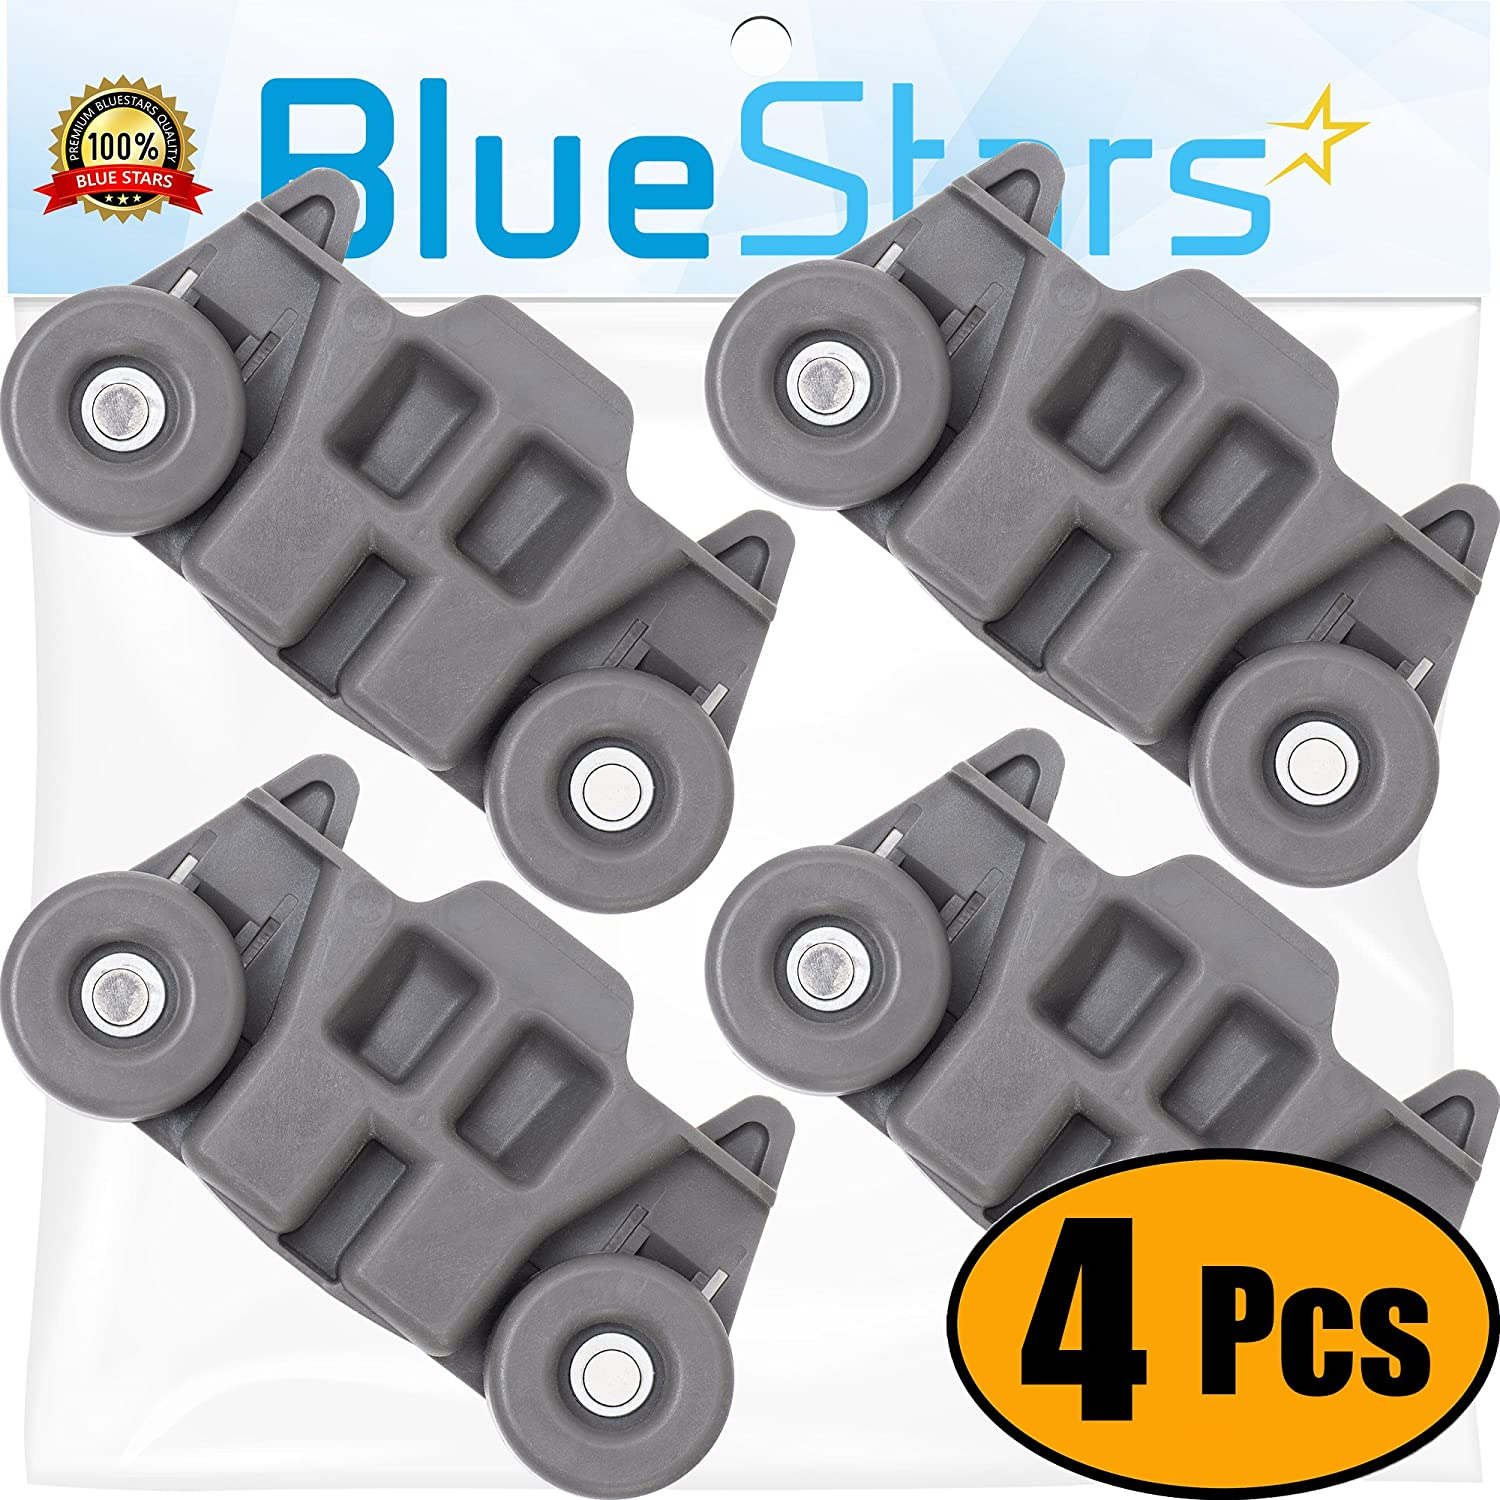 [UPGRADED] Ultra Durable W10195416 Lower Dishwasher Wheel Replacement by Blue Stars - Exact Fit for Whirlpool Kenmore Dishwasher- PACK OF 4 - Enhanced Durability with Steel Screws